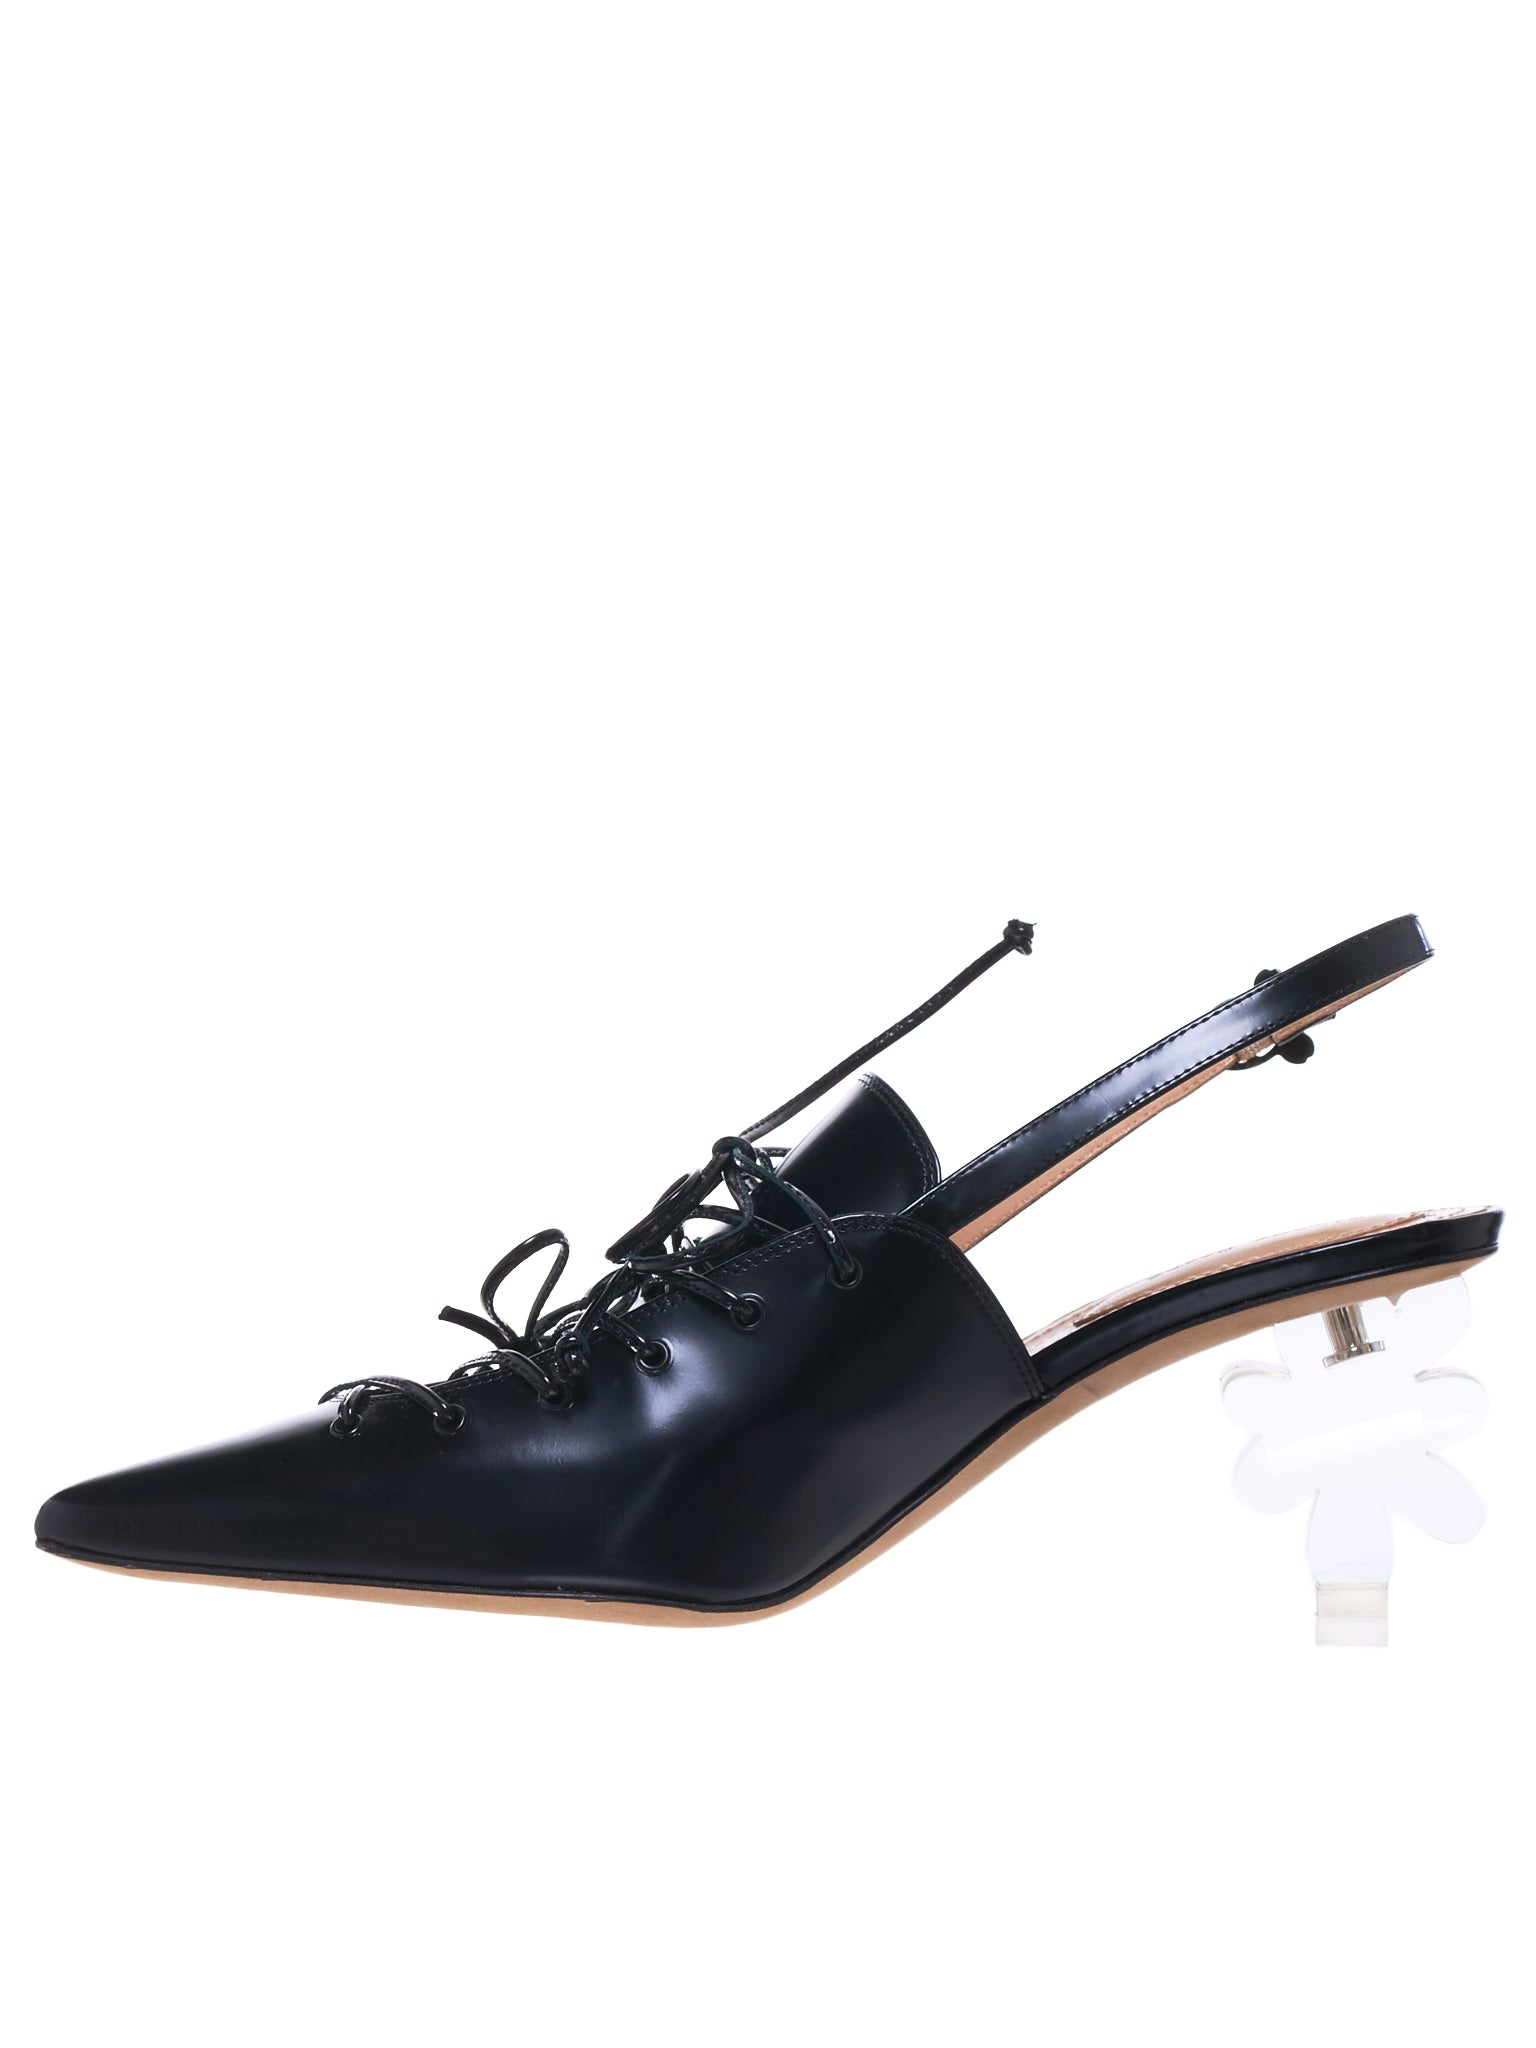 Flower Heel Pumps (LH6E-0740-BLACK-CLEAR)